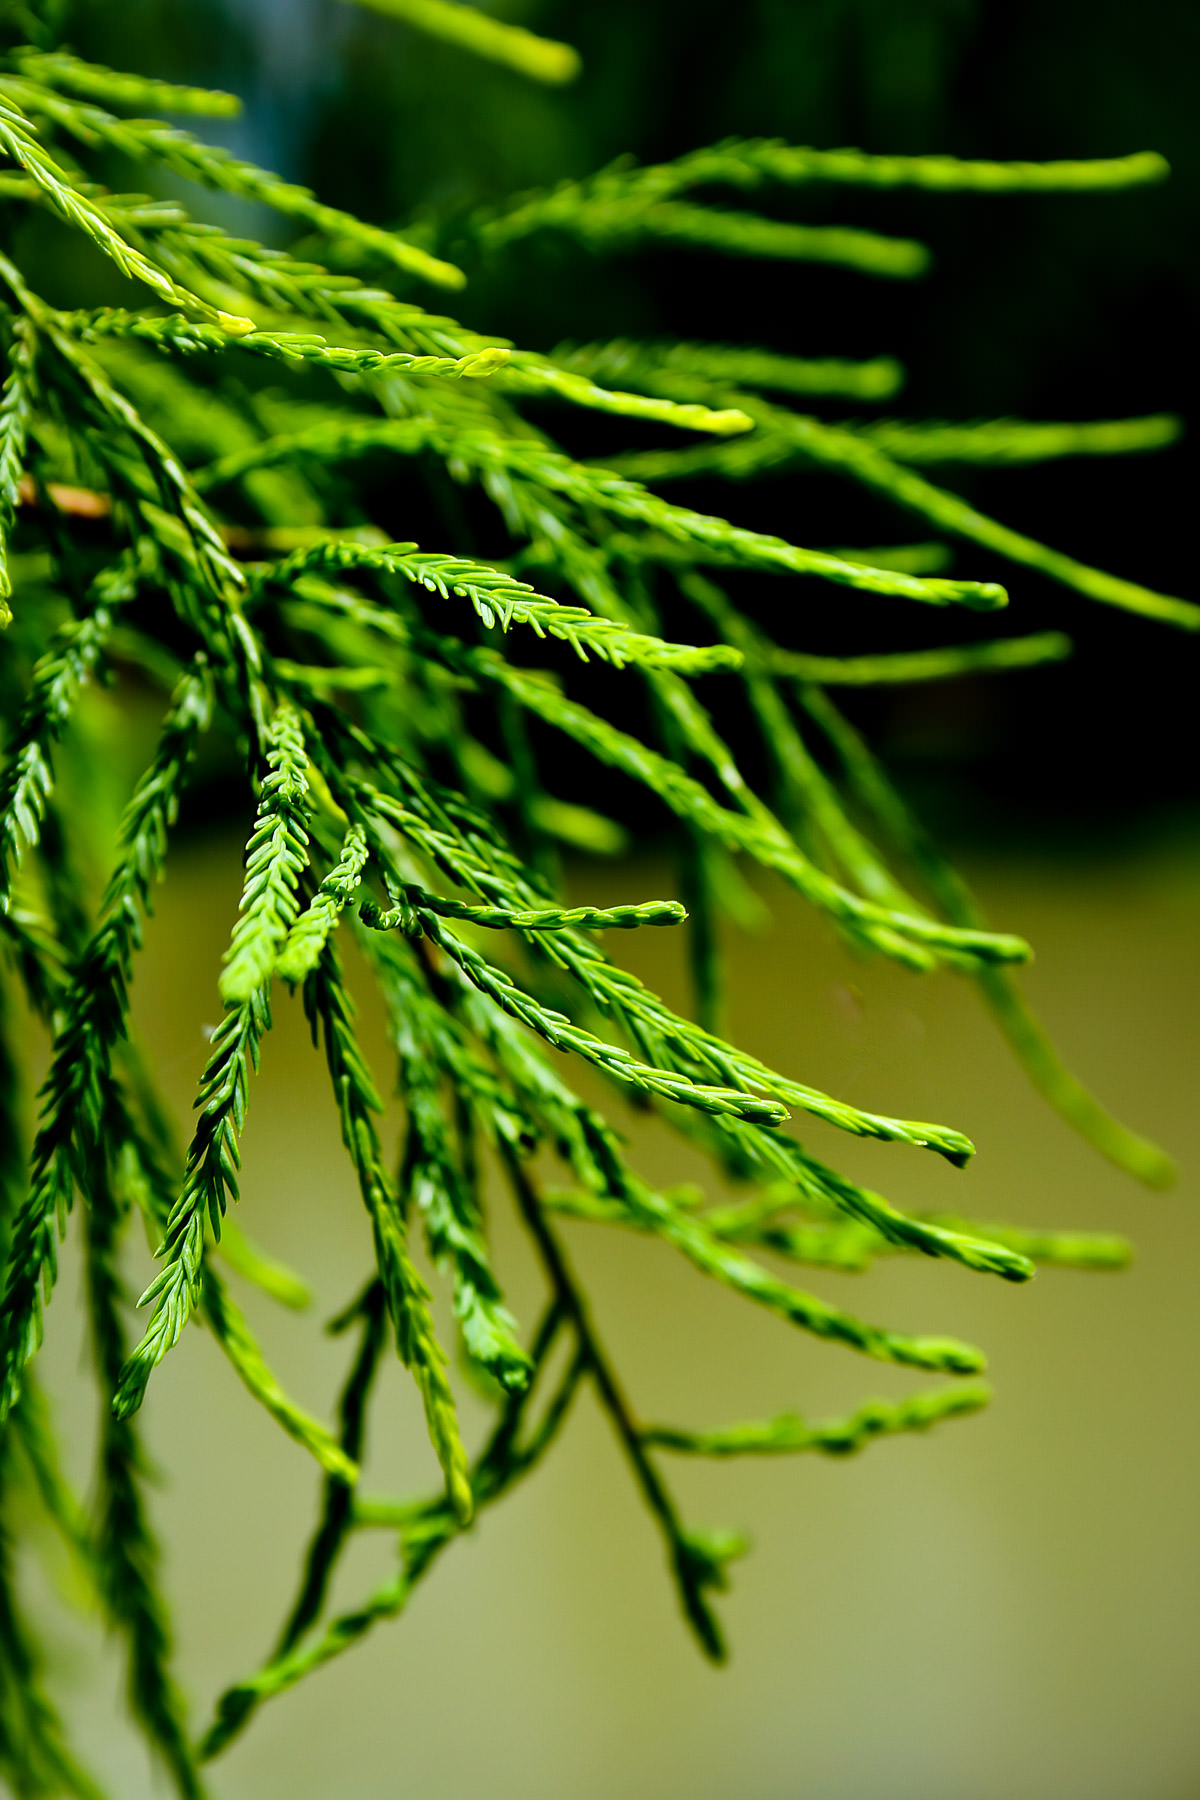 The leaves of a cypress tree, somewhere in Frisco, Texas.